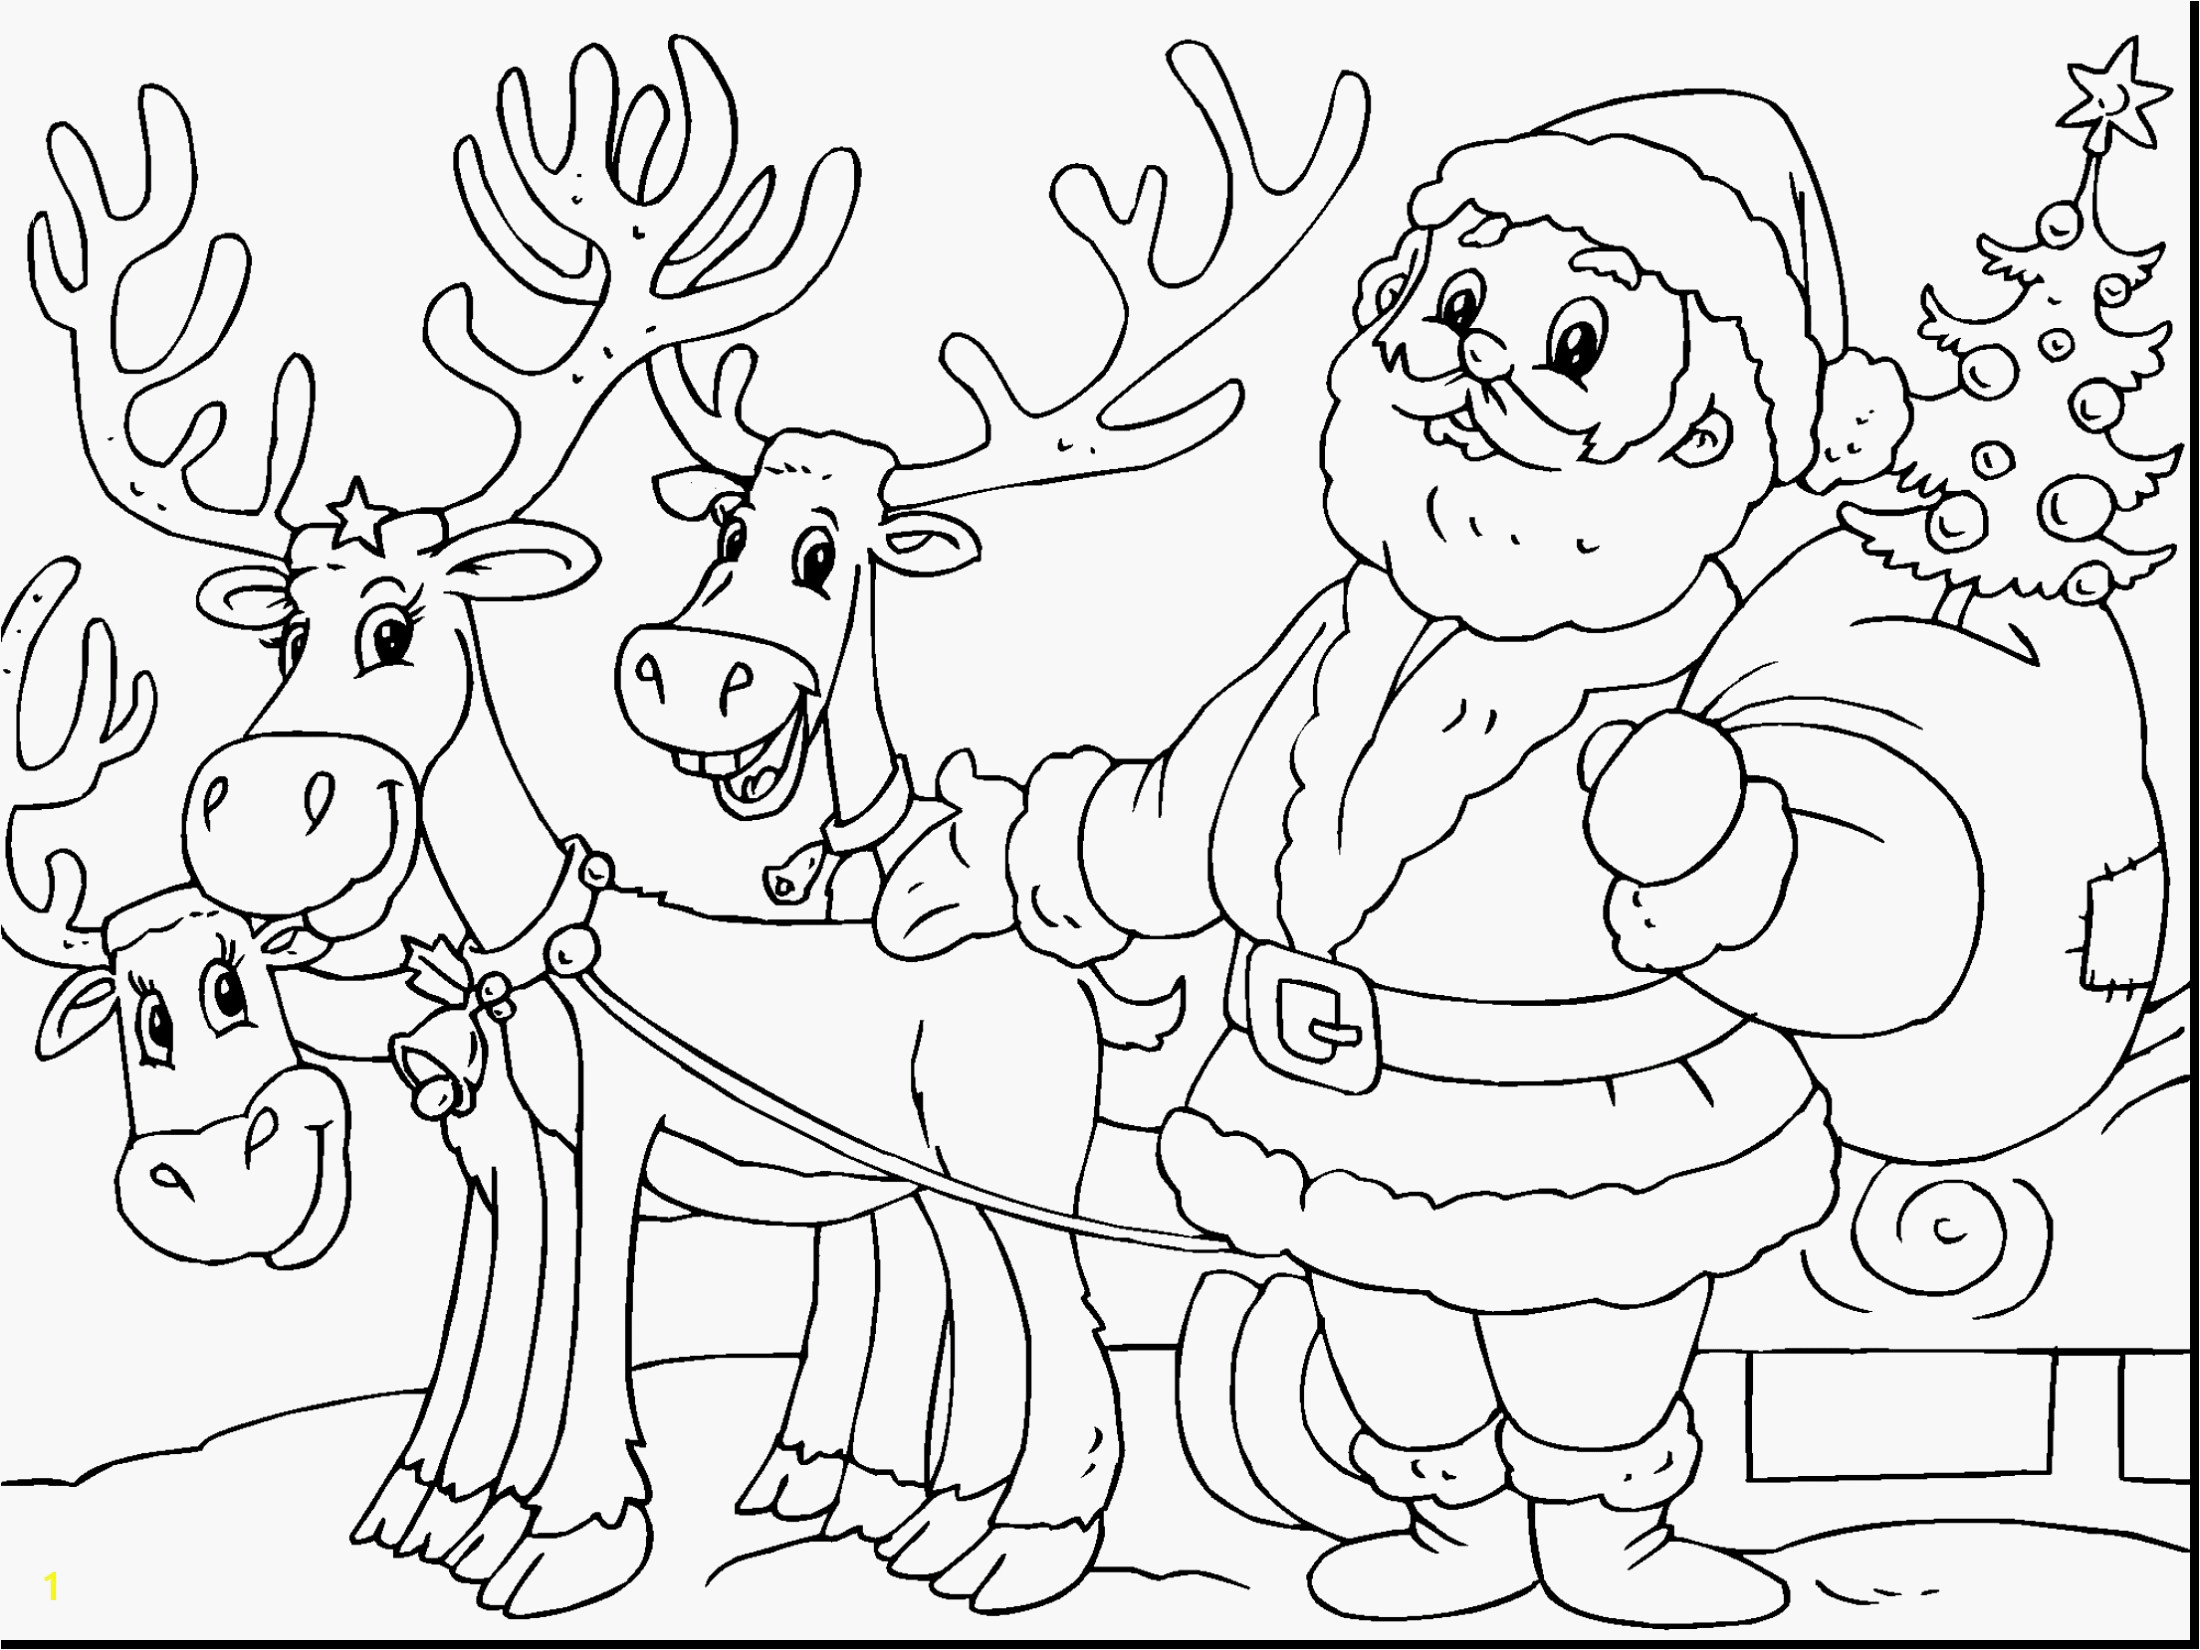 santa claus coloring pages Collection-Reindeer Coloring Pages Santa Claus and His Reindeer Coloring Pages 14-r